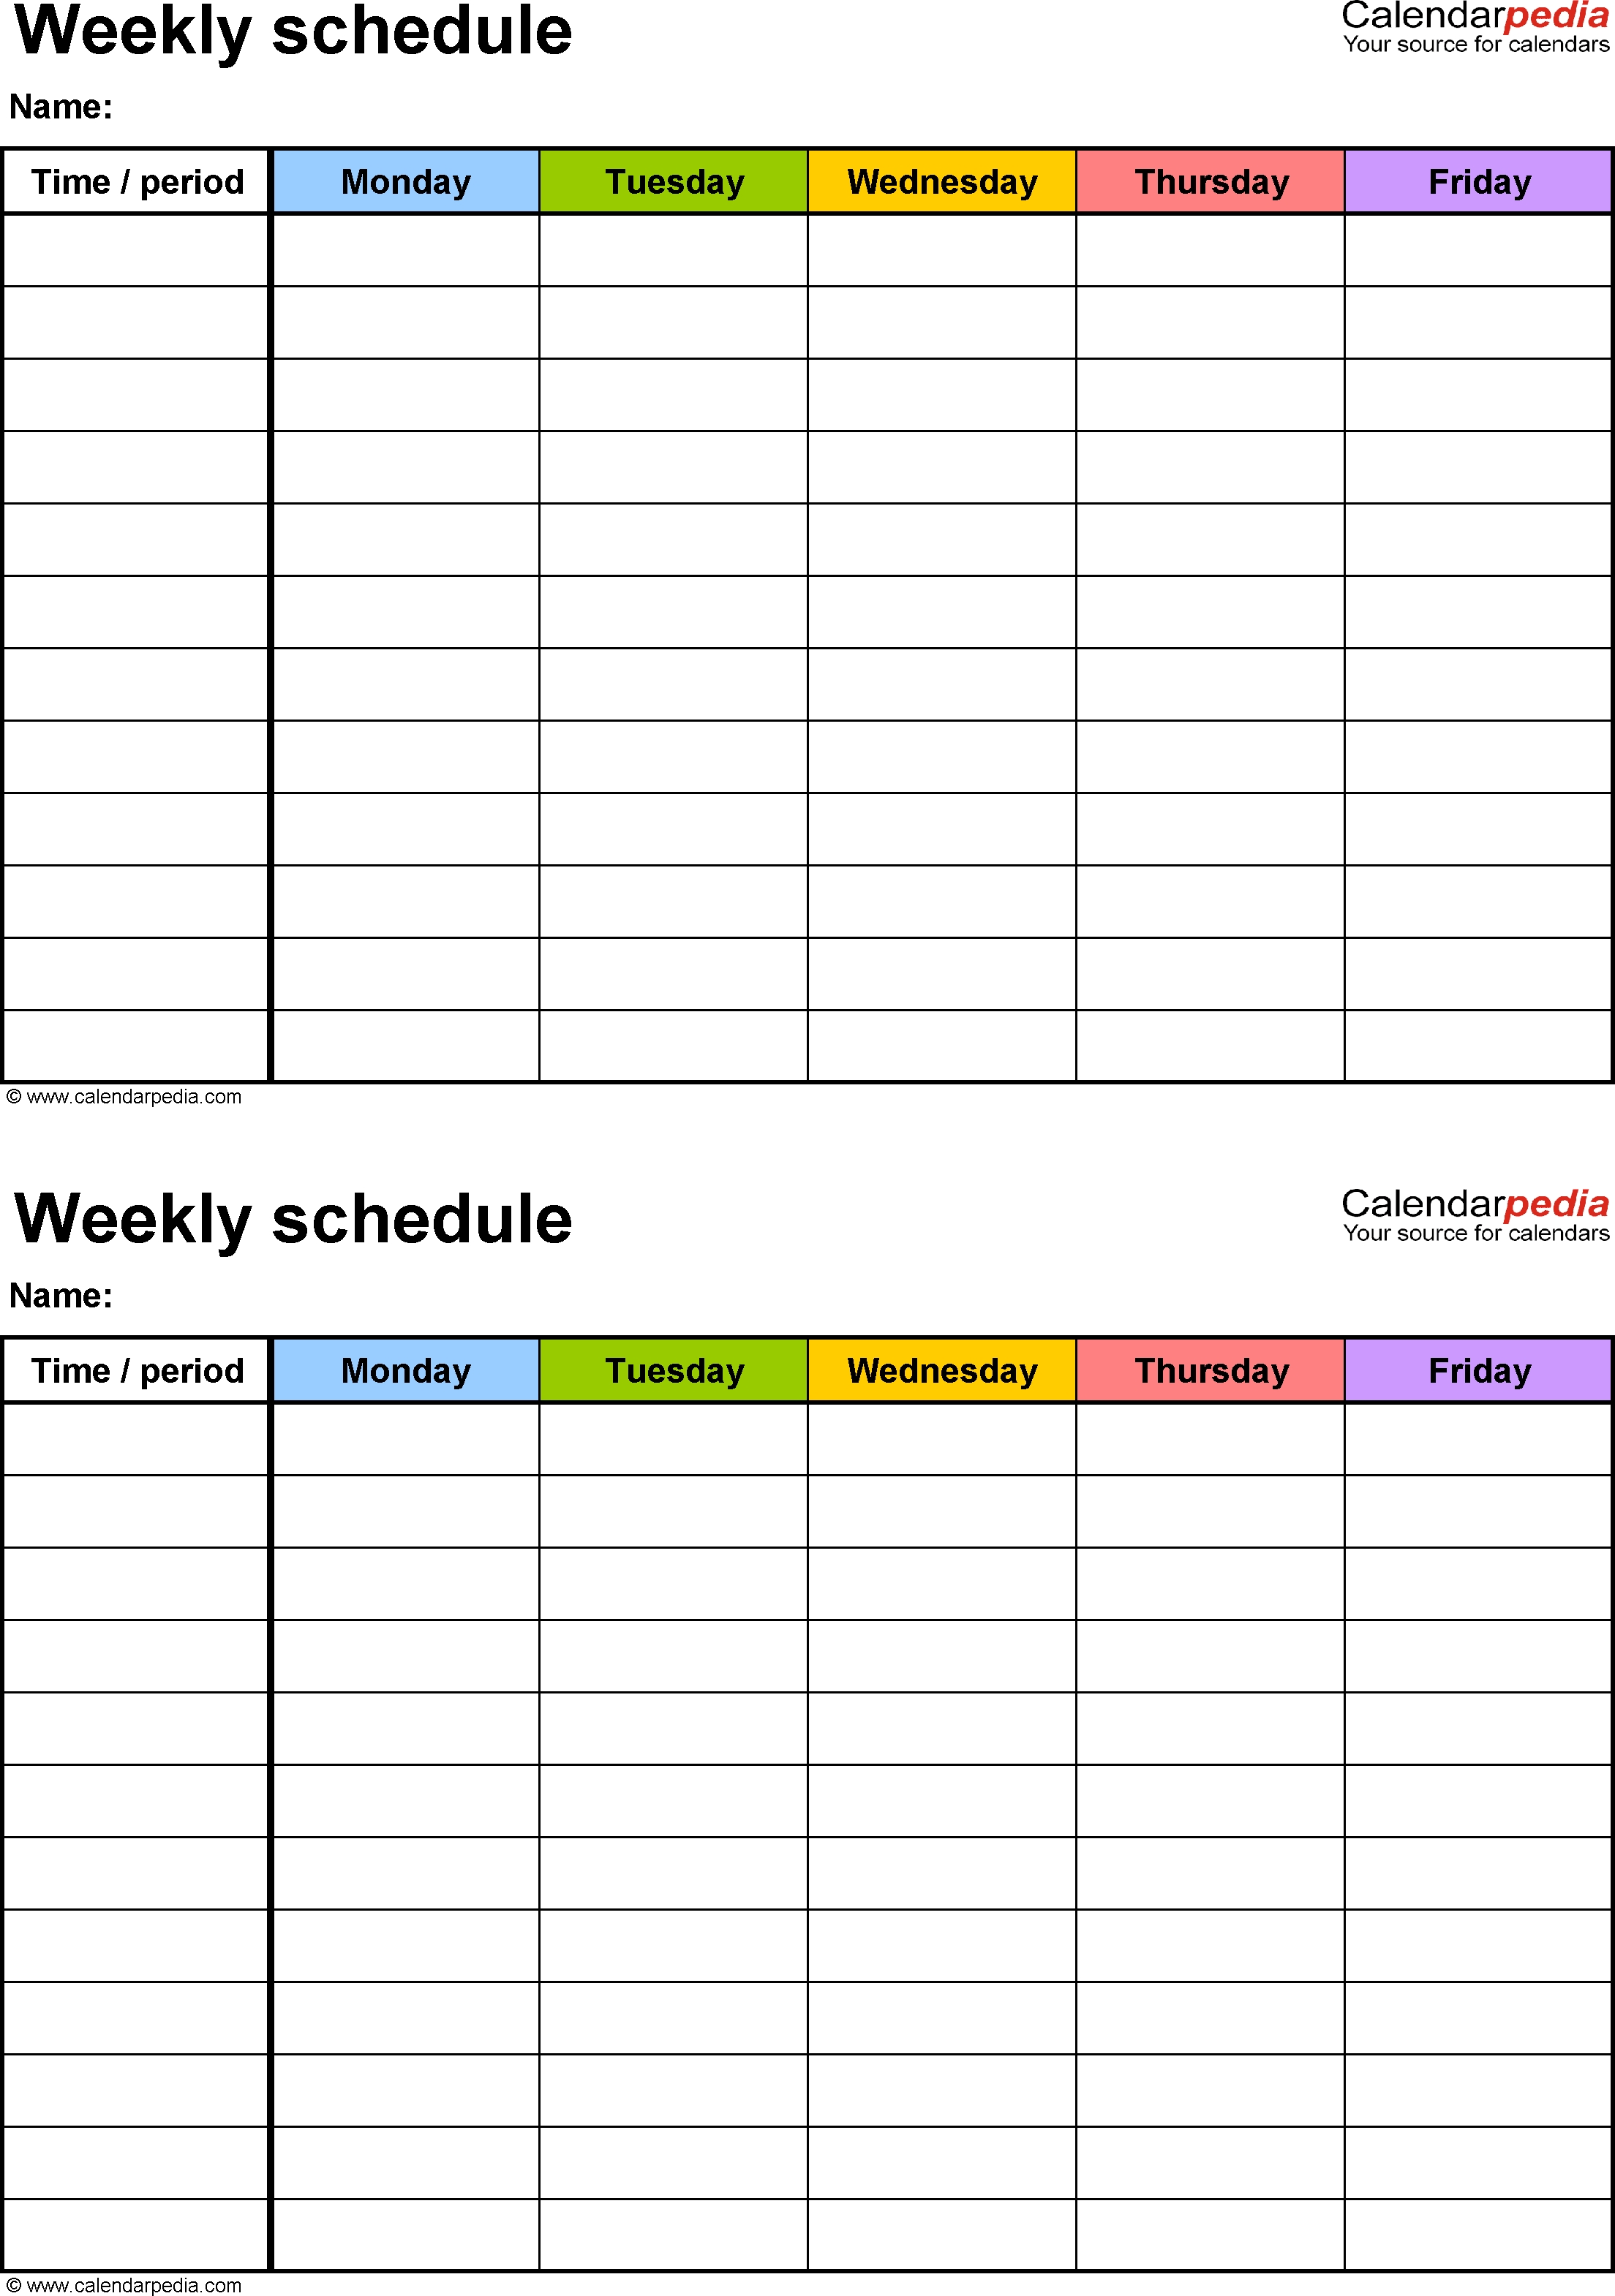 Free Weekly Schedule Templates For Word - 18 Templates throughout Weekly Monday Through Friday Appointment